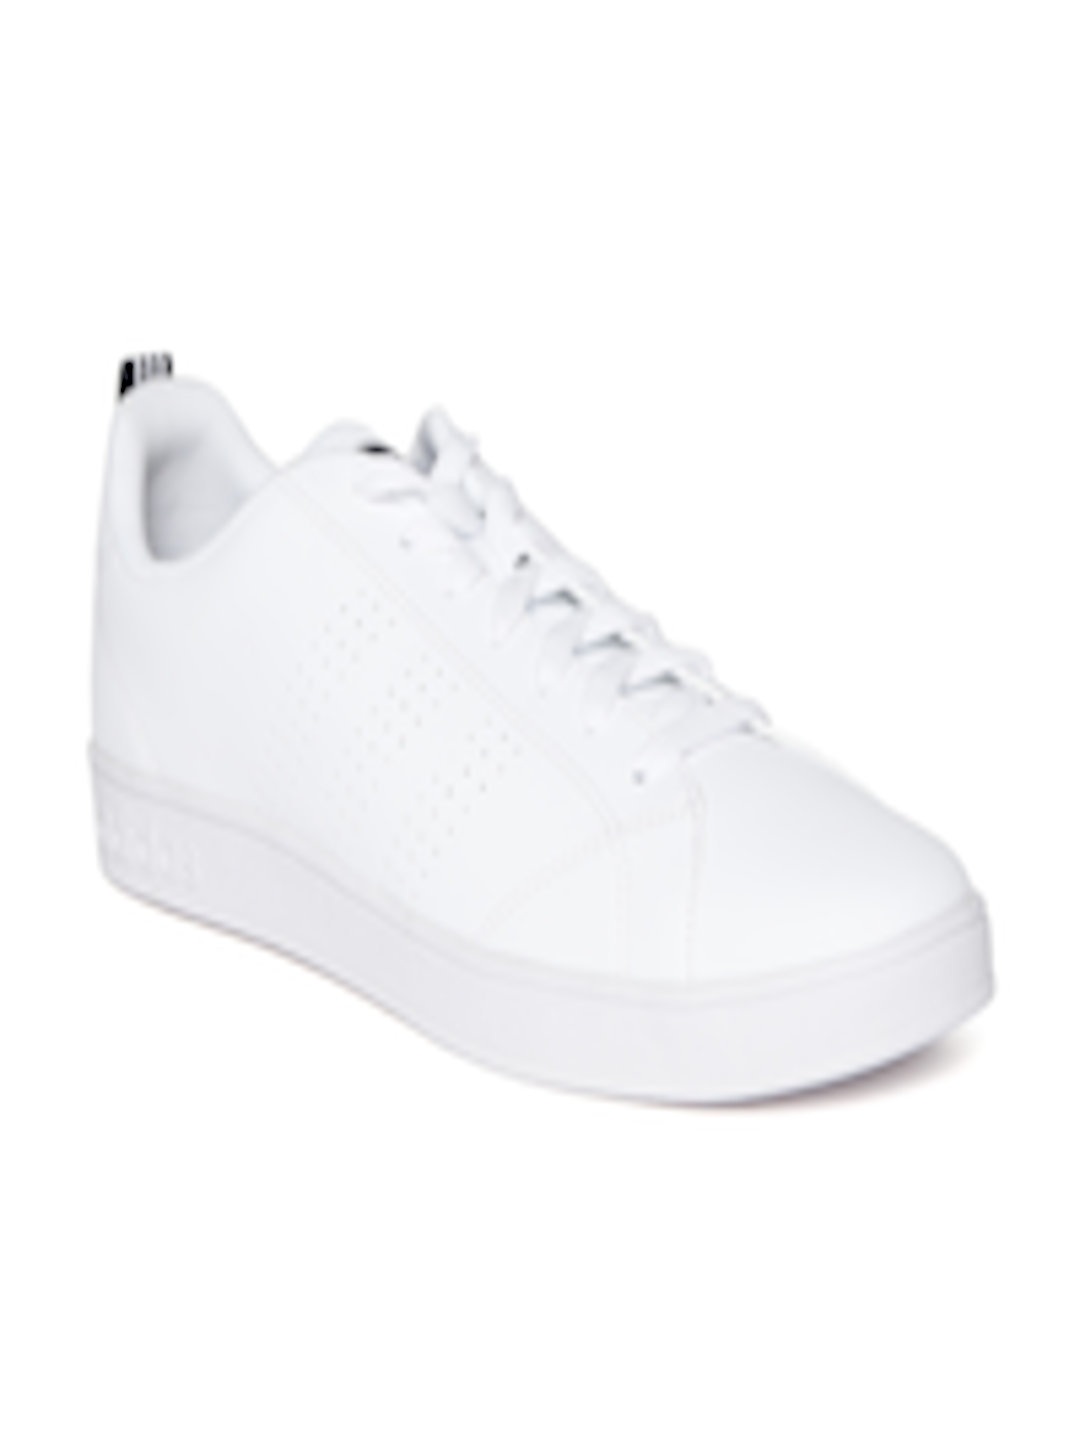 quality design fc221 8e461 Buy ADIDAS NEO Men White Advantage Clean VS Casual Shoes - Casual Shoes for  Men 1312253  Myntra